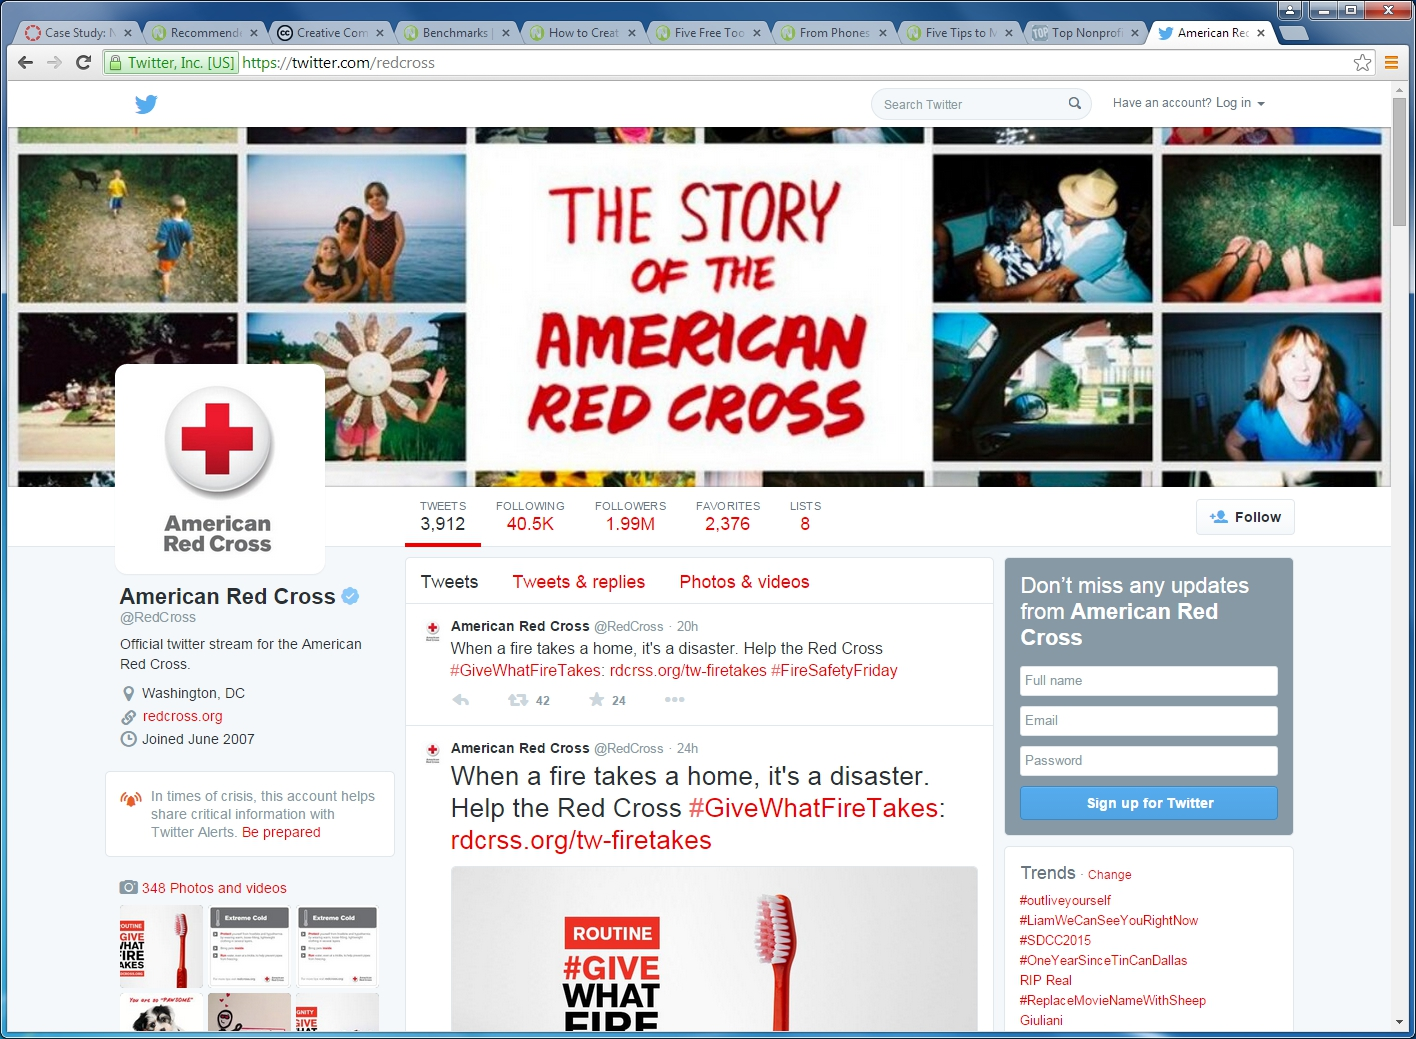 the american red cross case study The american red cross' ® call center provides service nationally and to 700 local chapters around the country, offering ongoing customer care to blood donorsthe american red cross® implemented broadsoft cc-one to replace an on-premise system that was expensive to maintain and upgrade.